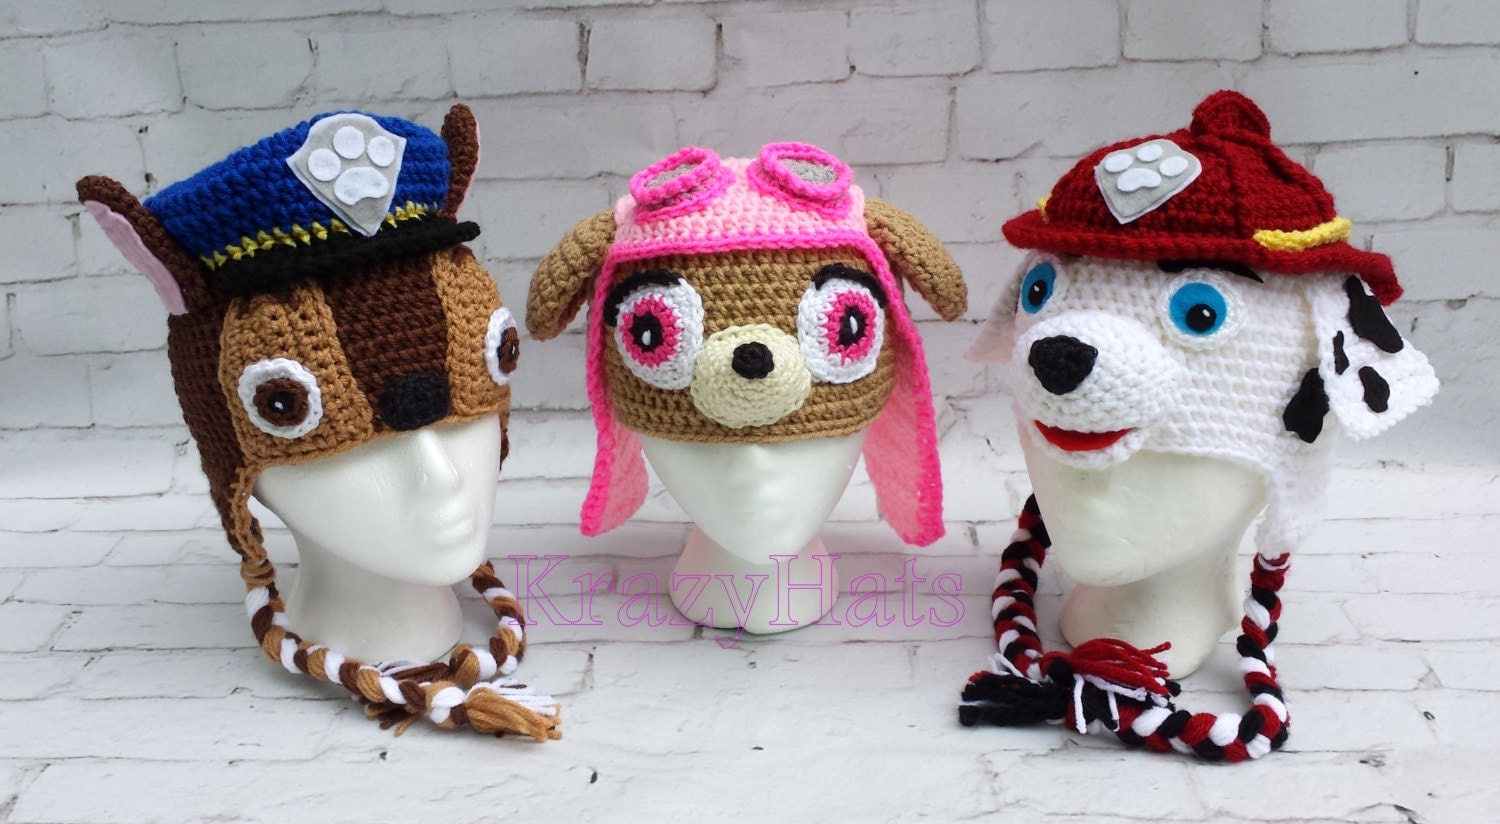 Crochet Hat Pattern Paw Patrol : Crochet dog hat.Police Firefitergirl dog hat.